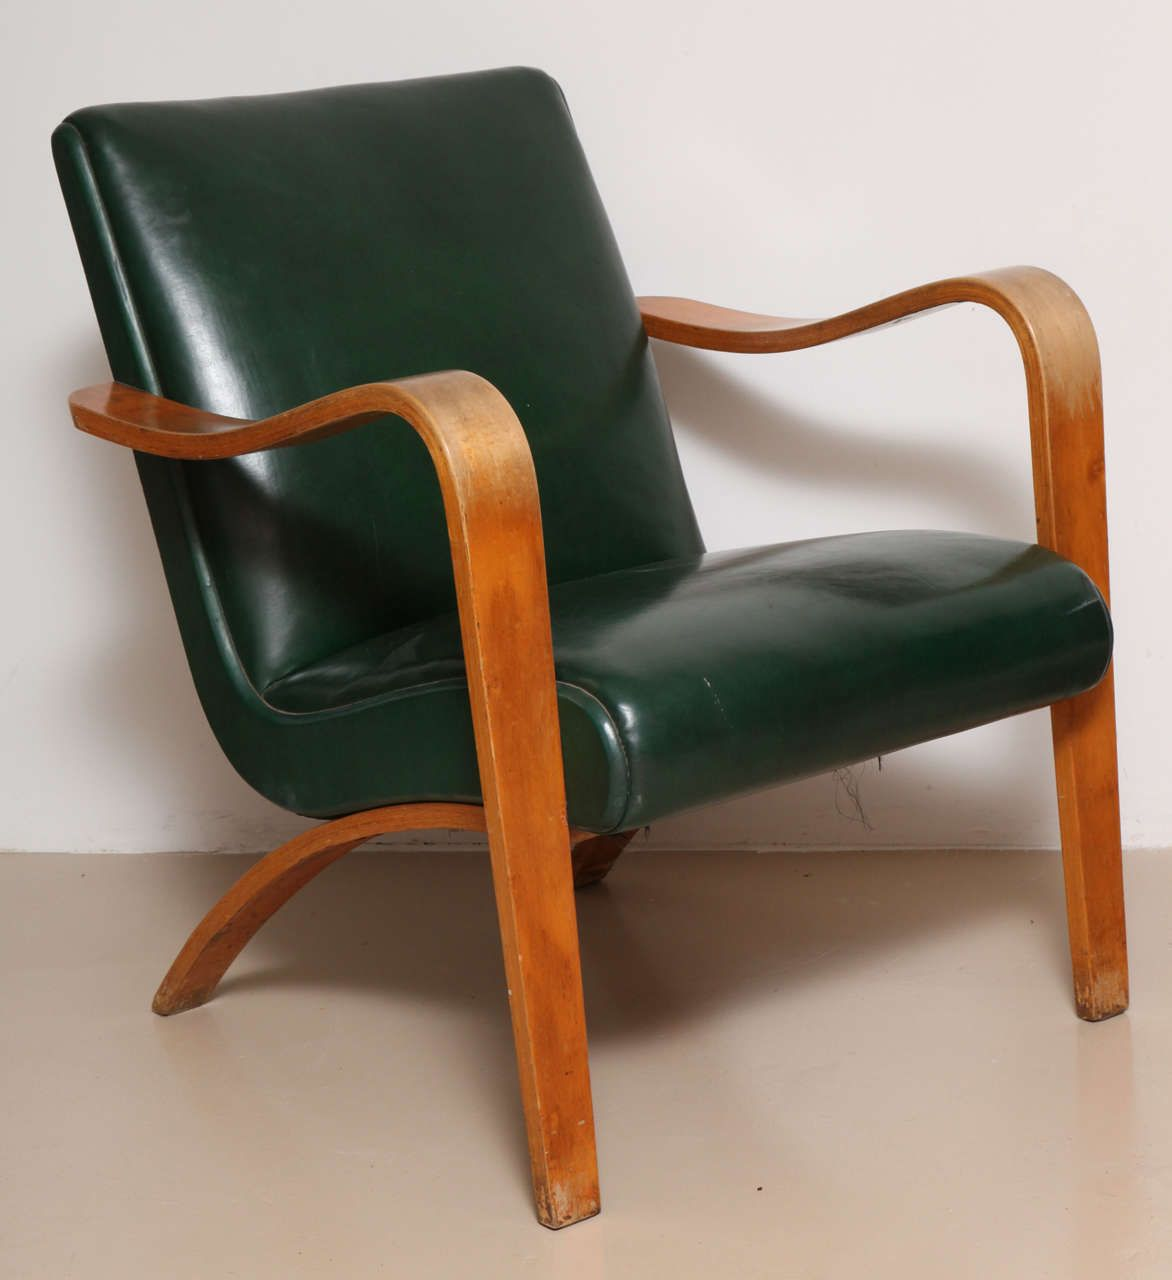 Strange Michael Thonet 1940S Bentwood Lounge Chair Vintage Spiritservingveterans Wood Chair Design Ideas Spiritservingveteransorg